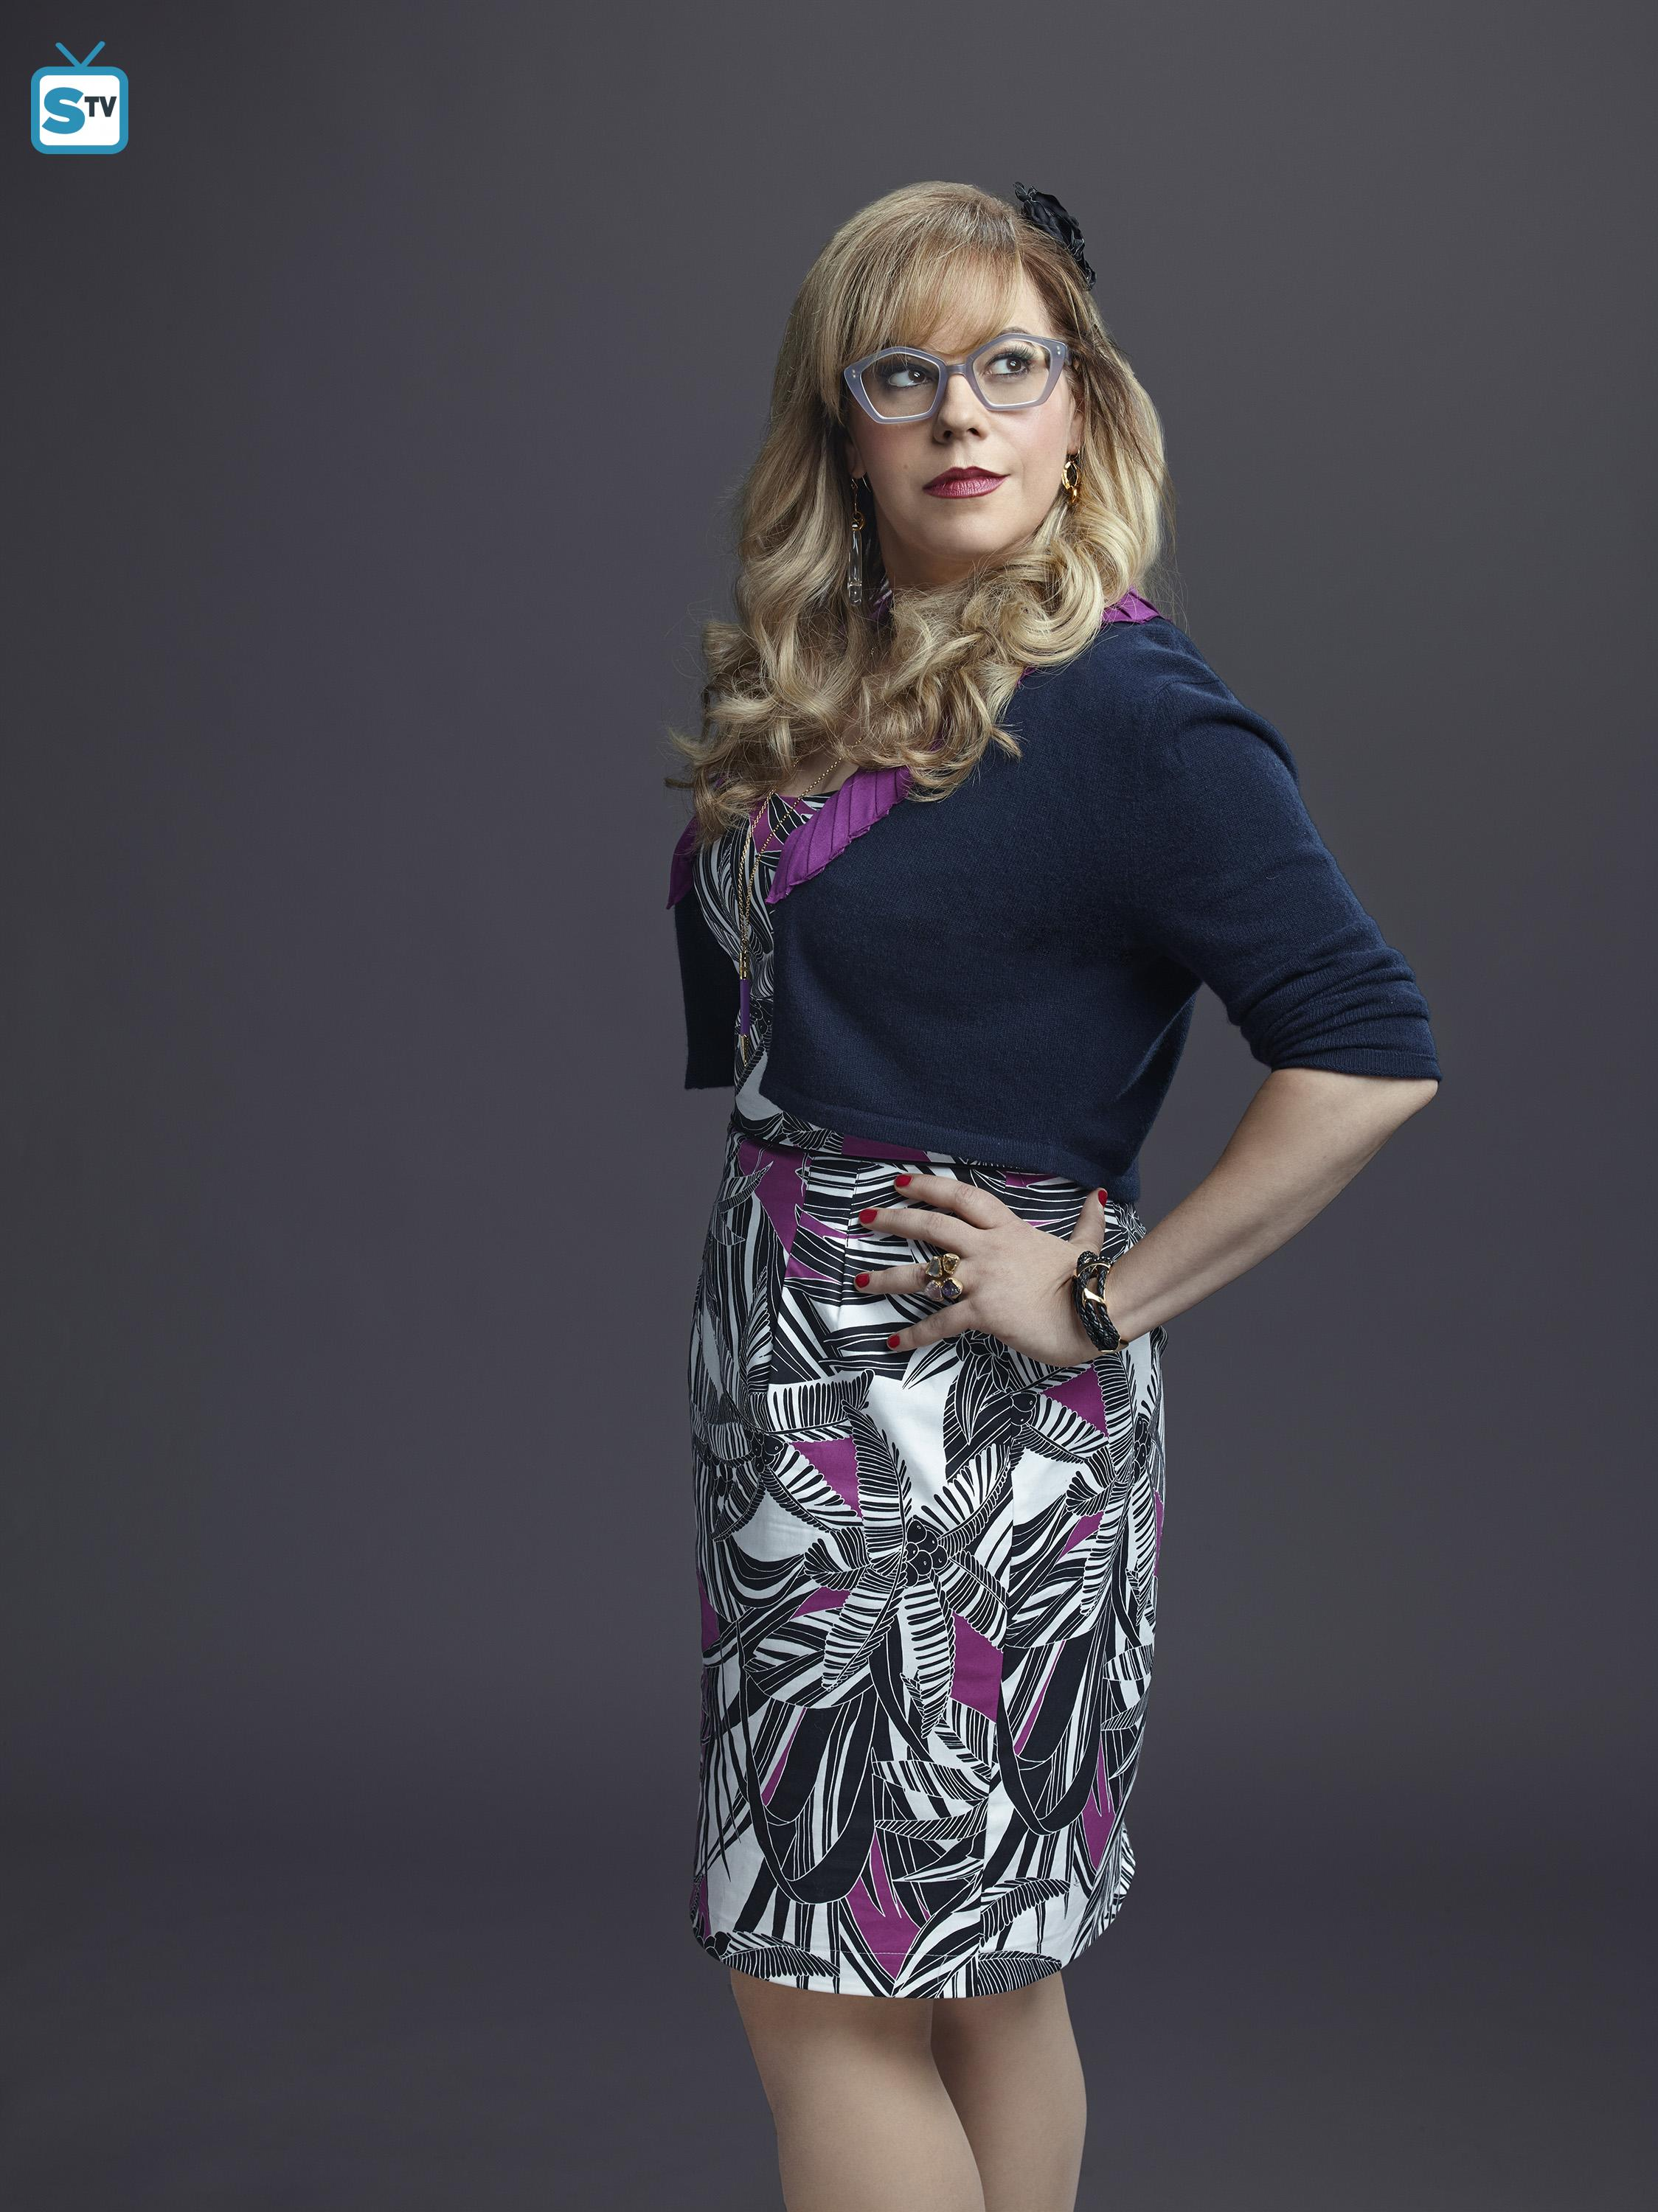 penelope garcia weight loss